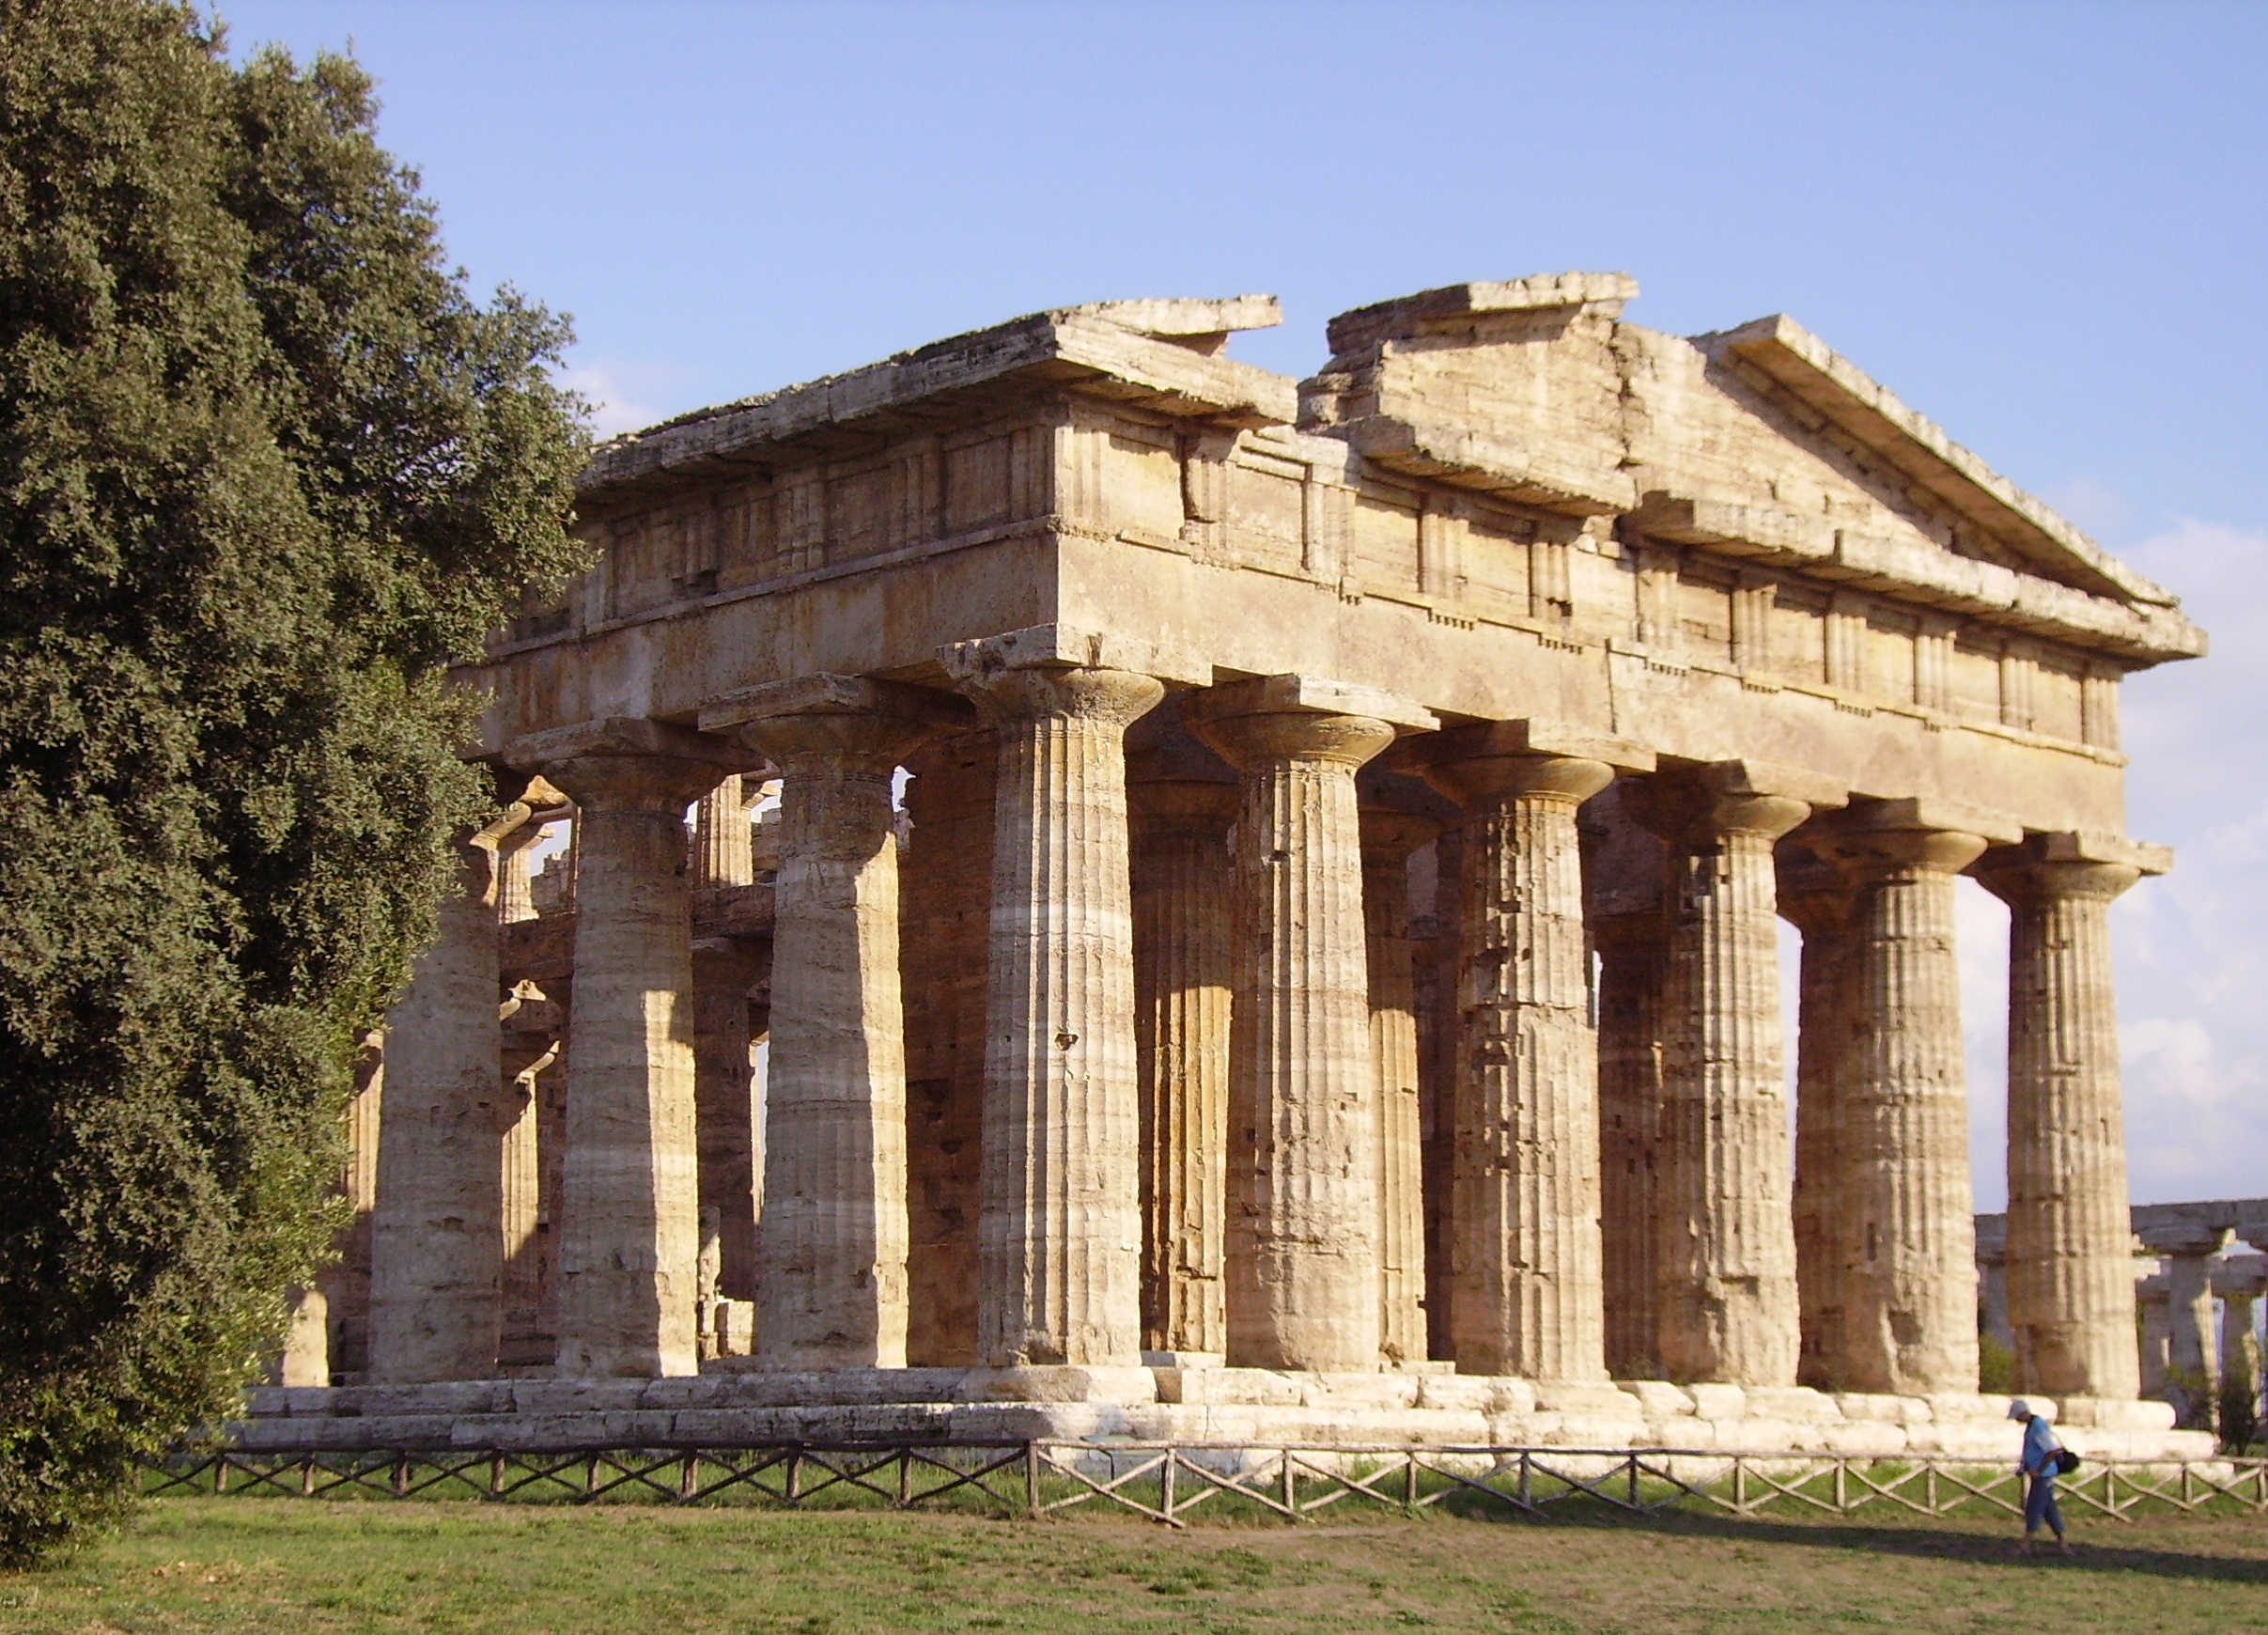 File:Temple of Apollo28.jpg - Wikipedia